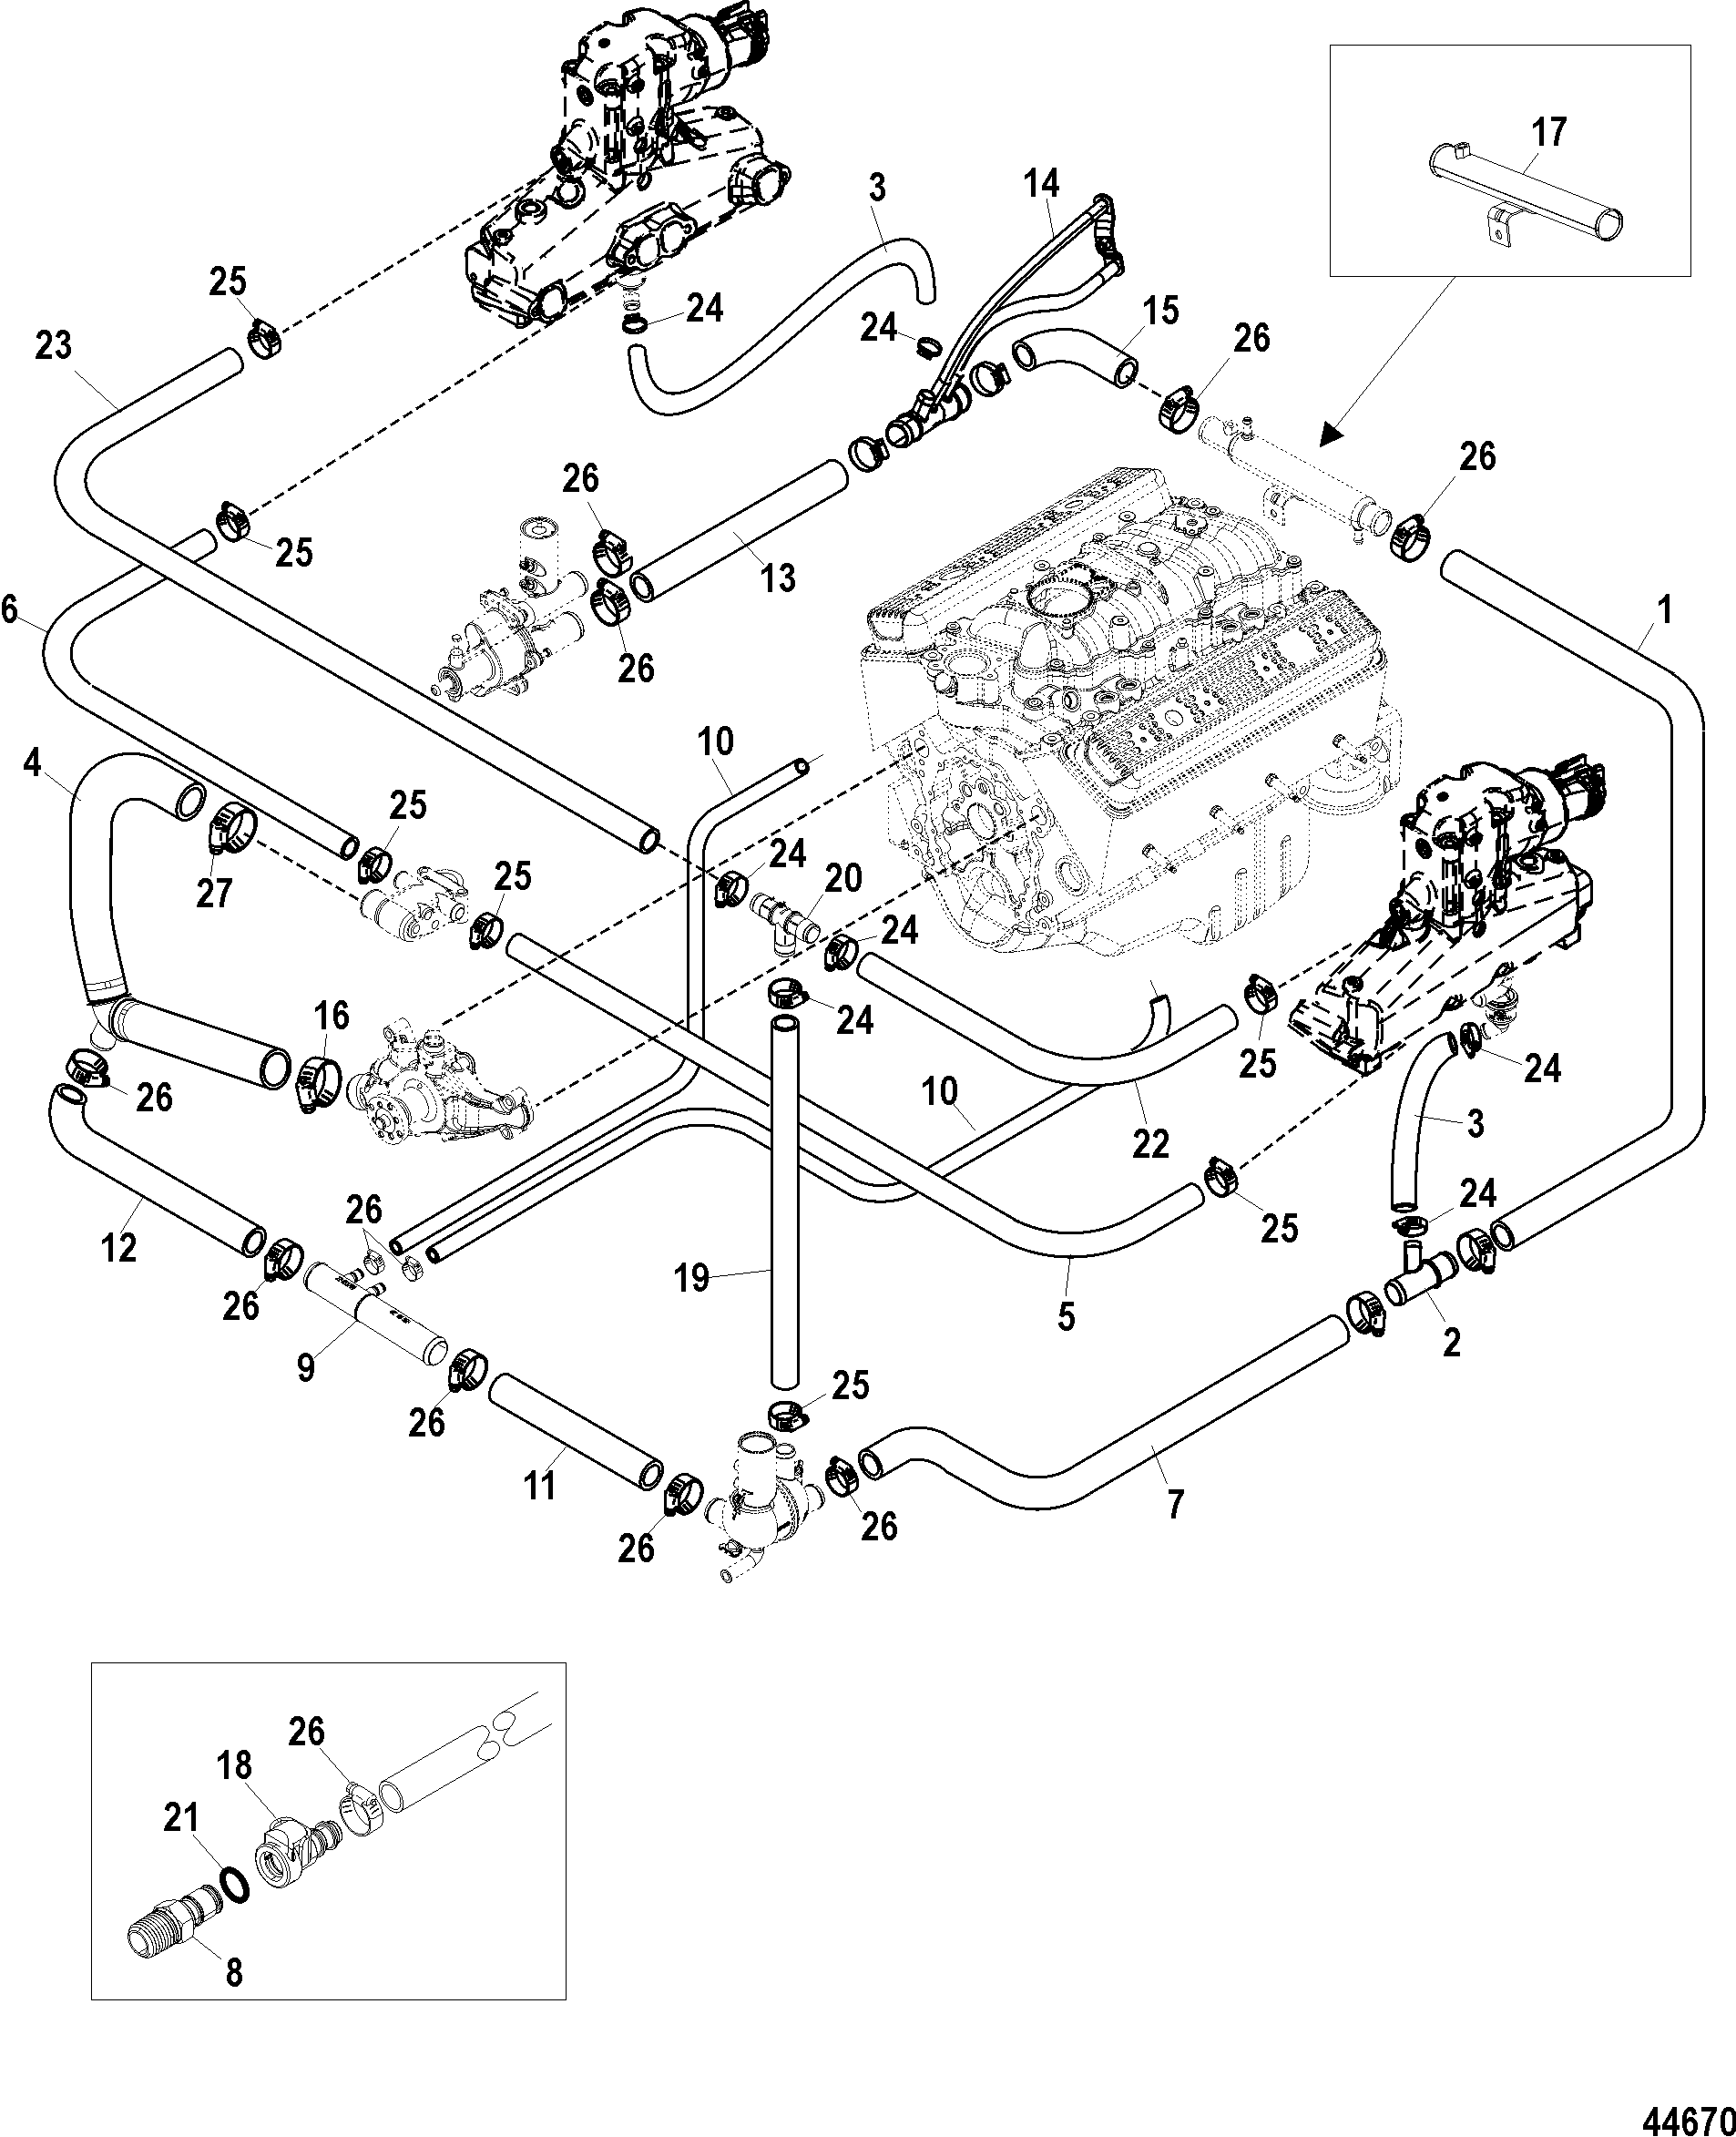 Show product further Exhaust System Basics likewise Mercruiser Trim Wiring further 593482 5 7 Merc Manifold To Riser Closed Cooling System Gasket Question likewise Show product. on mercruiser exhaust system diagram